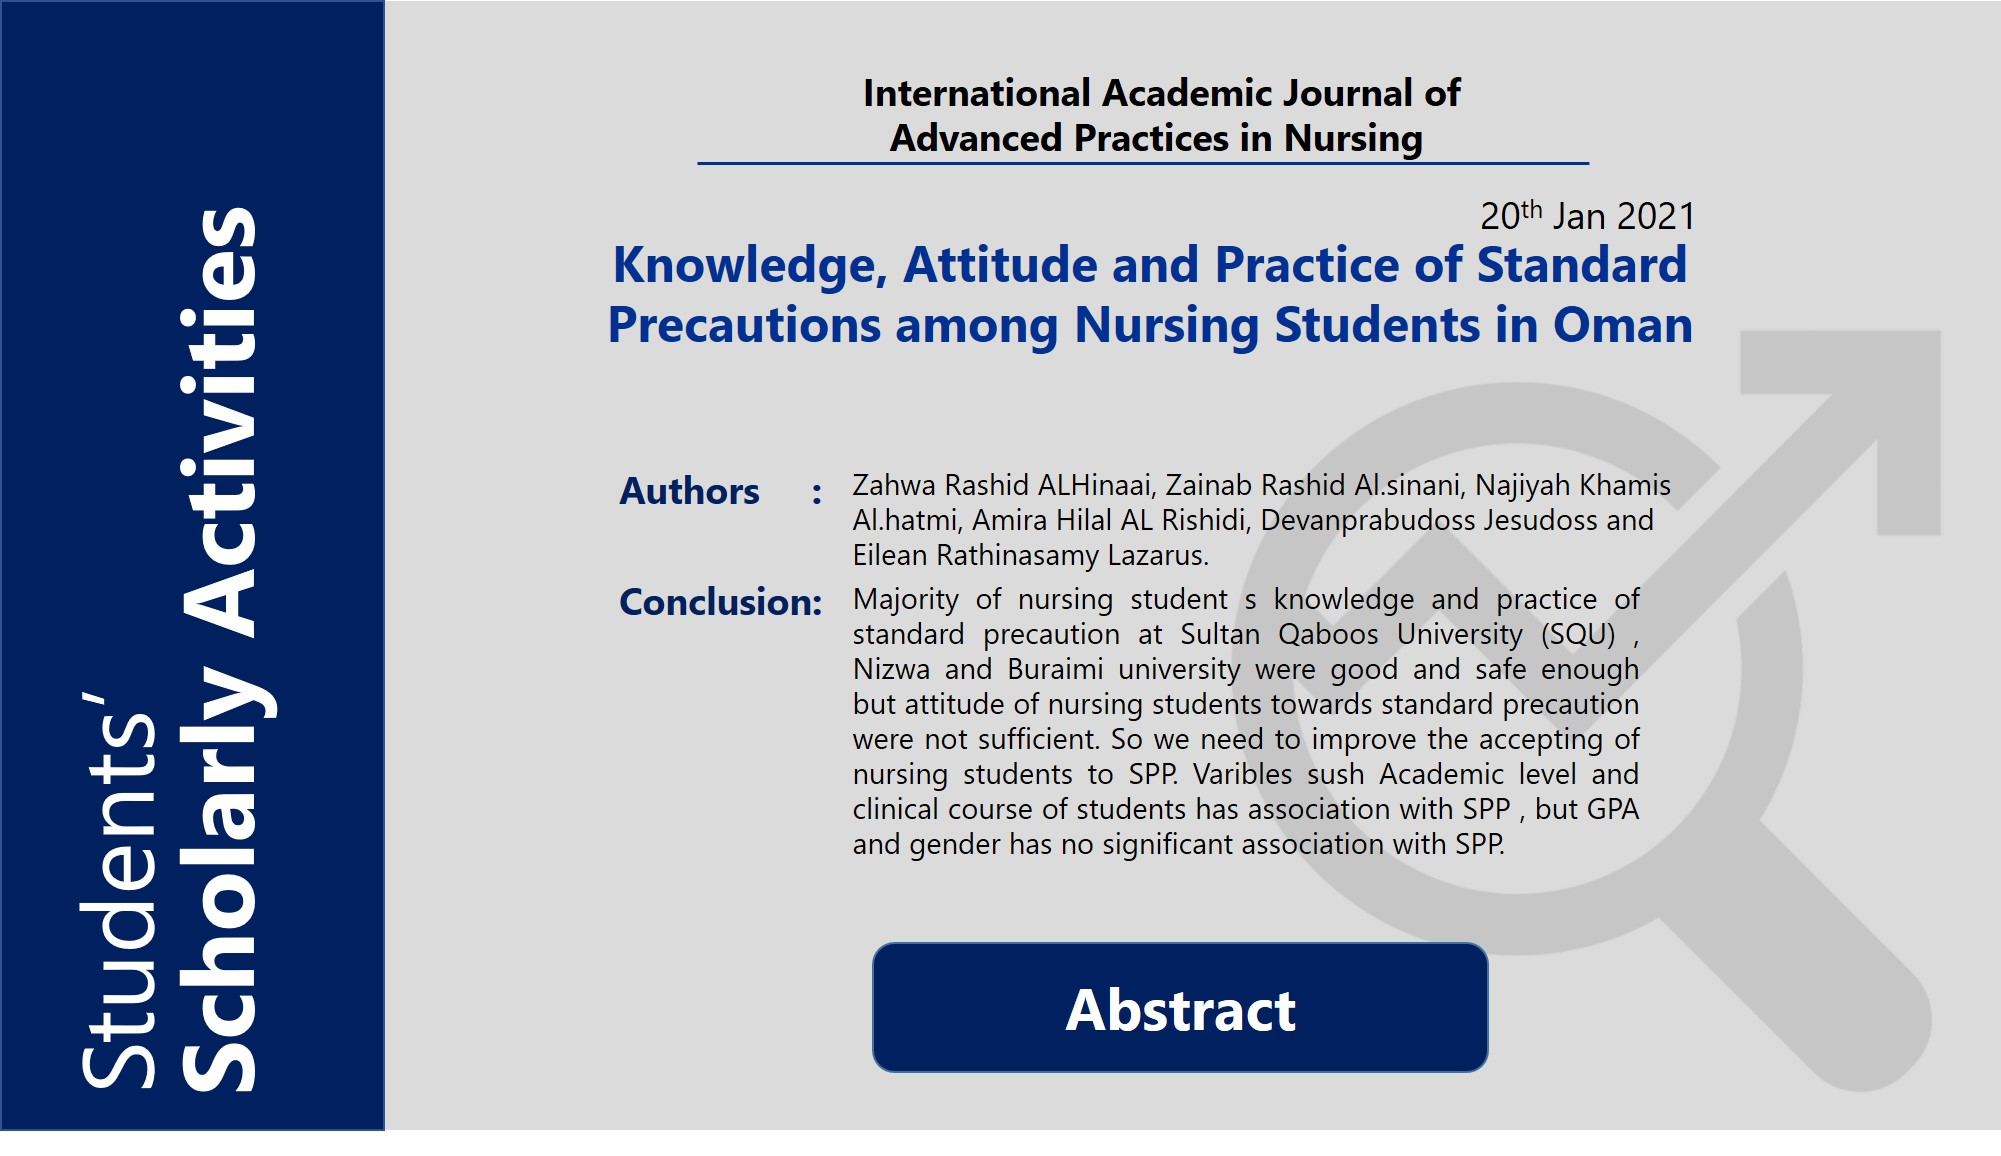 Knowledge, Attitude and Practice of Standard Precautions among Nursing Students in Oman